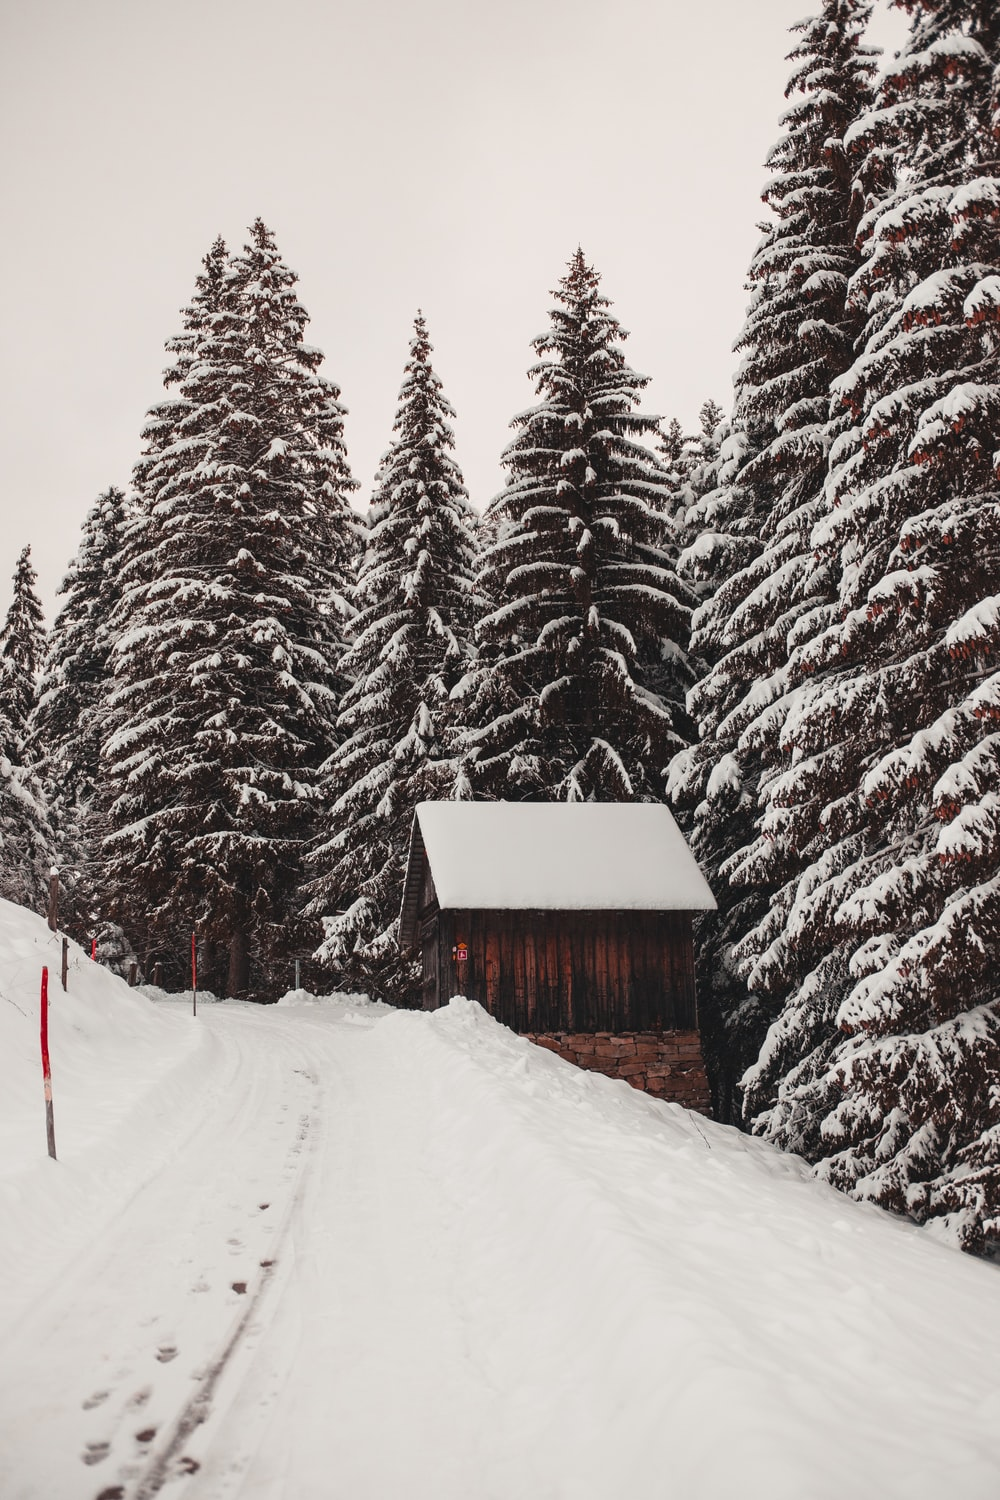 brown house surrounded by pine trees covered with snow